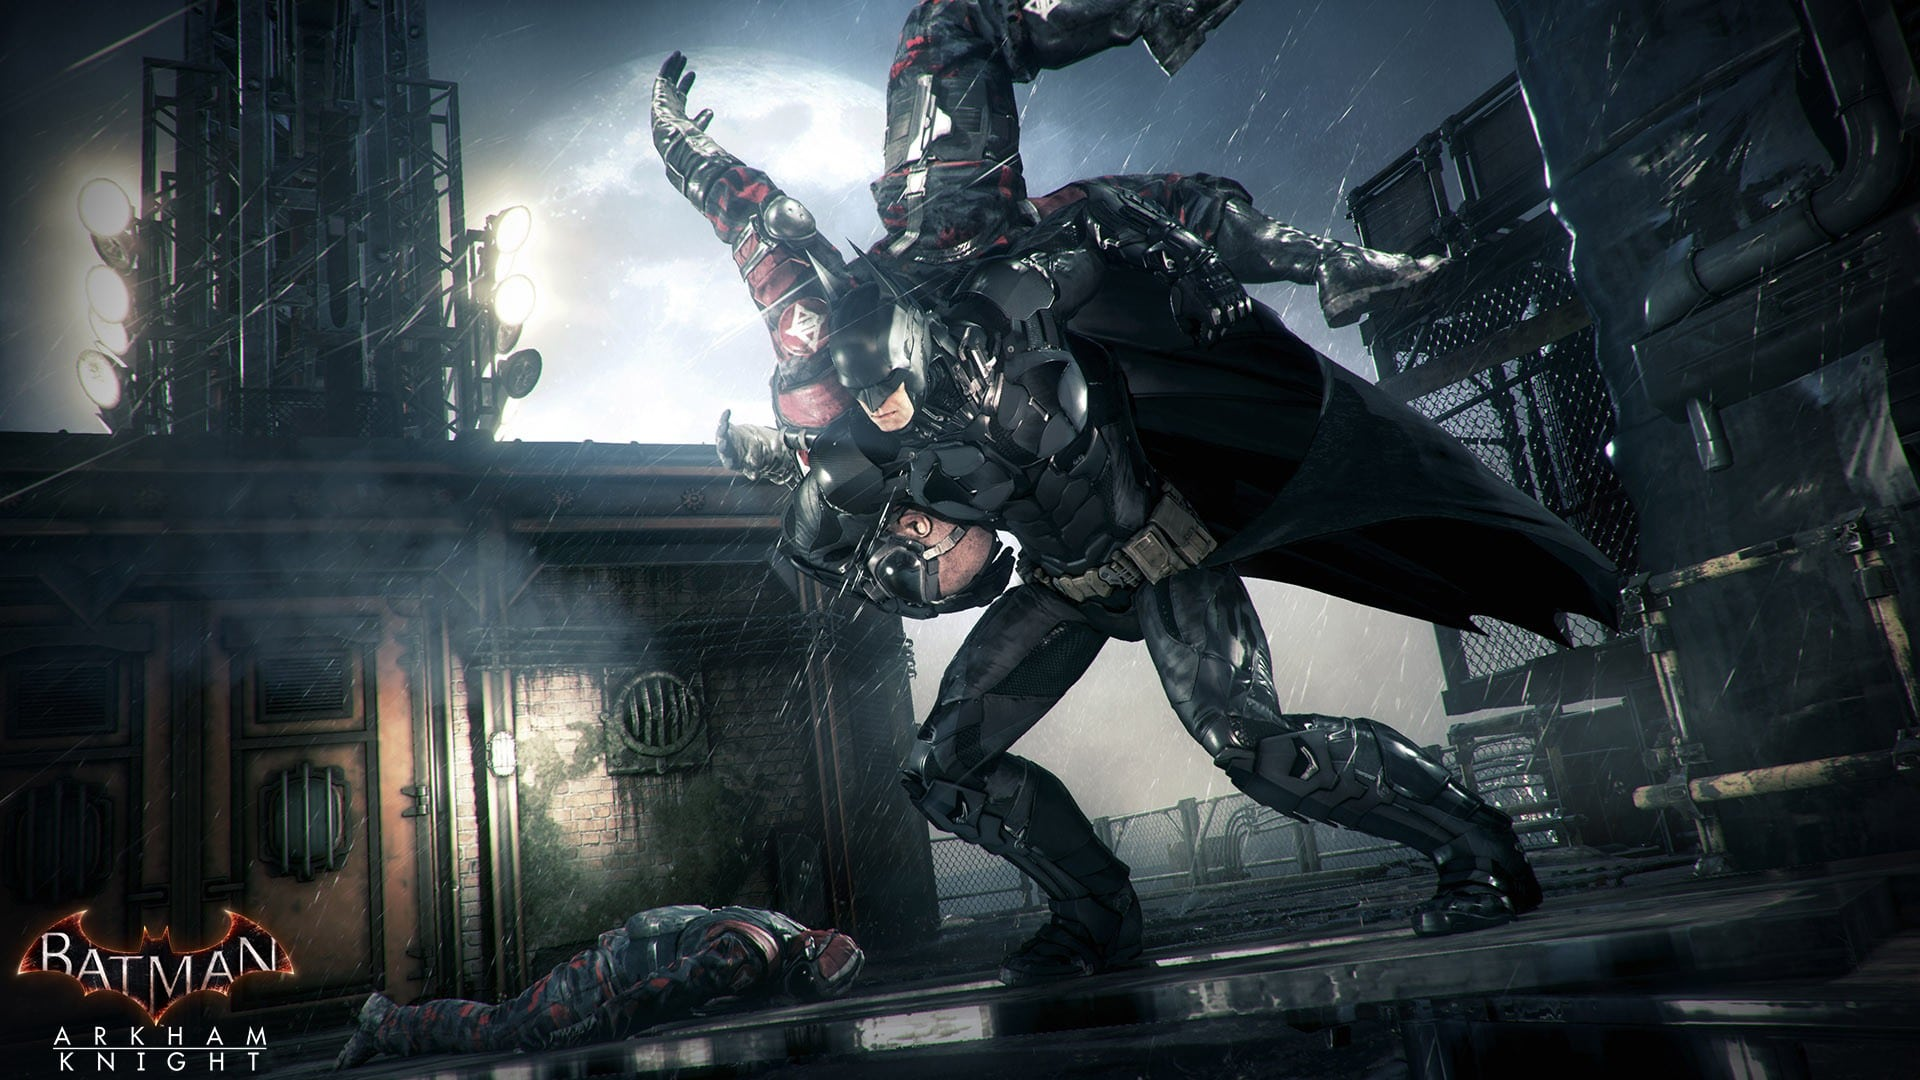 gallery for batman arkham knight wallpaper 1080p